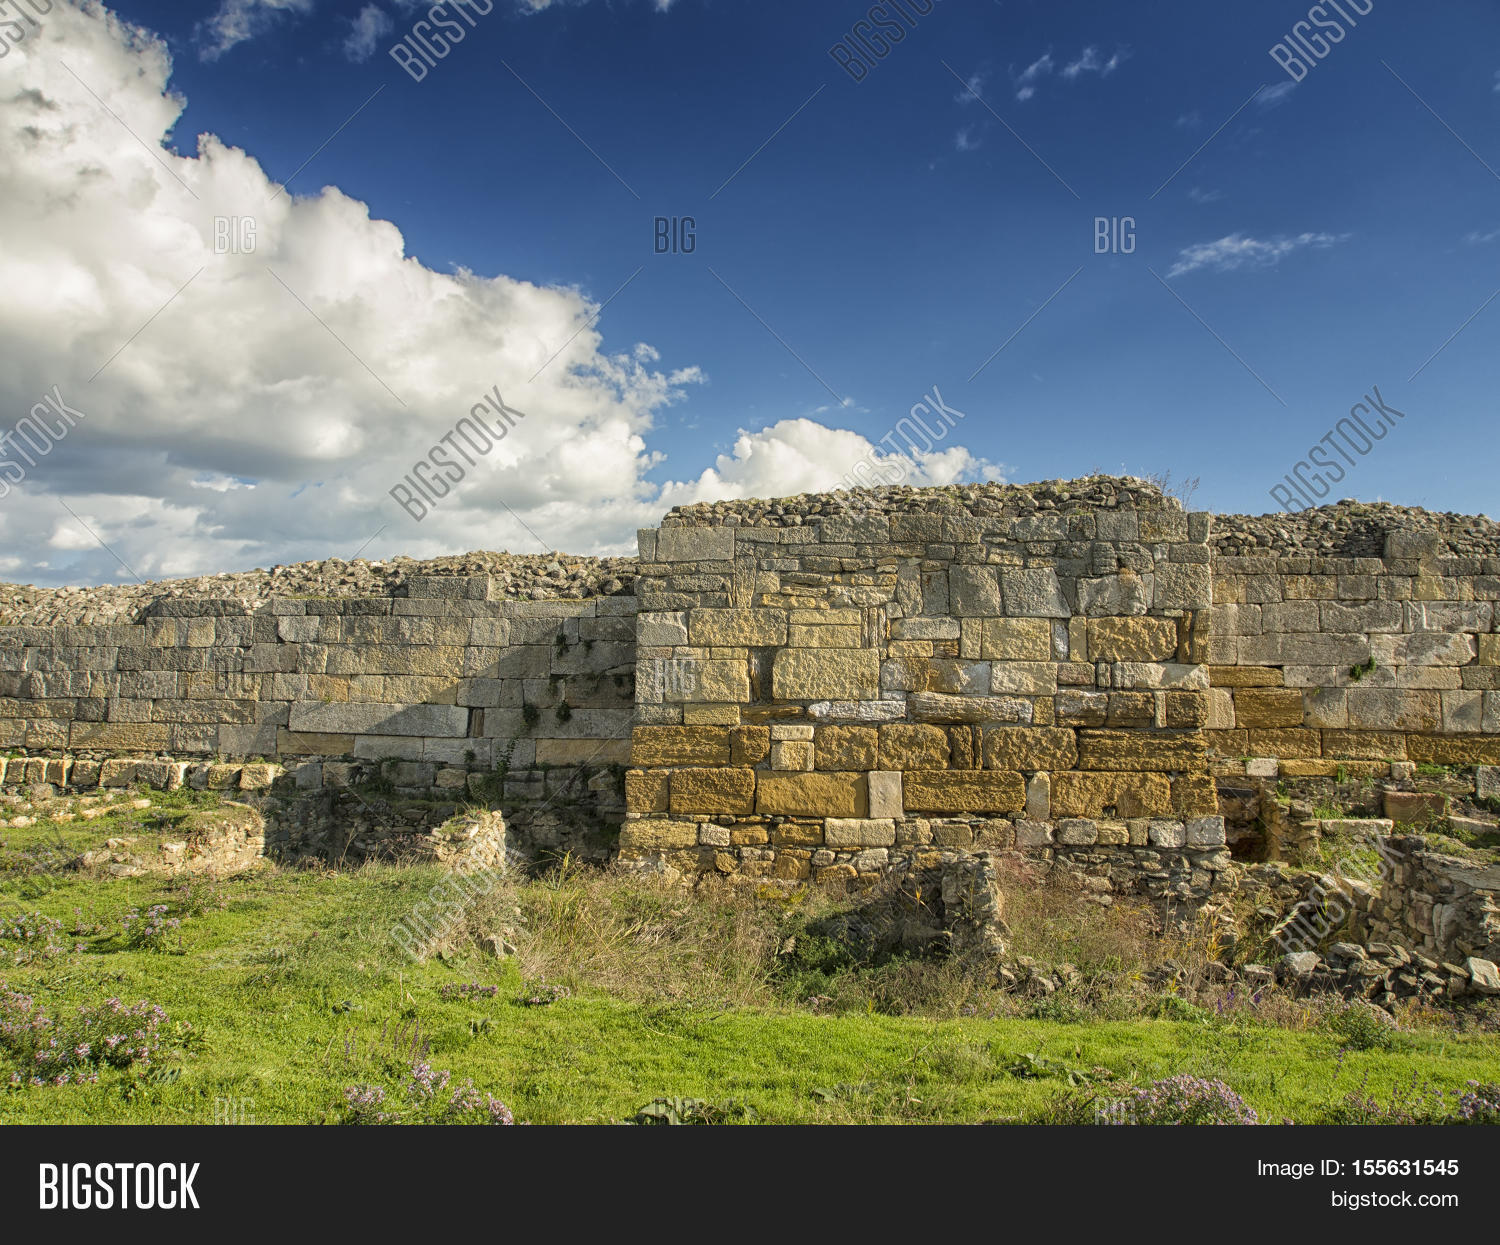 Dramatic Blue Sky Image Photo Free Trial Bigstock